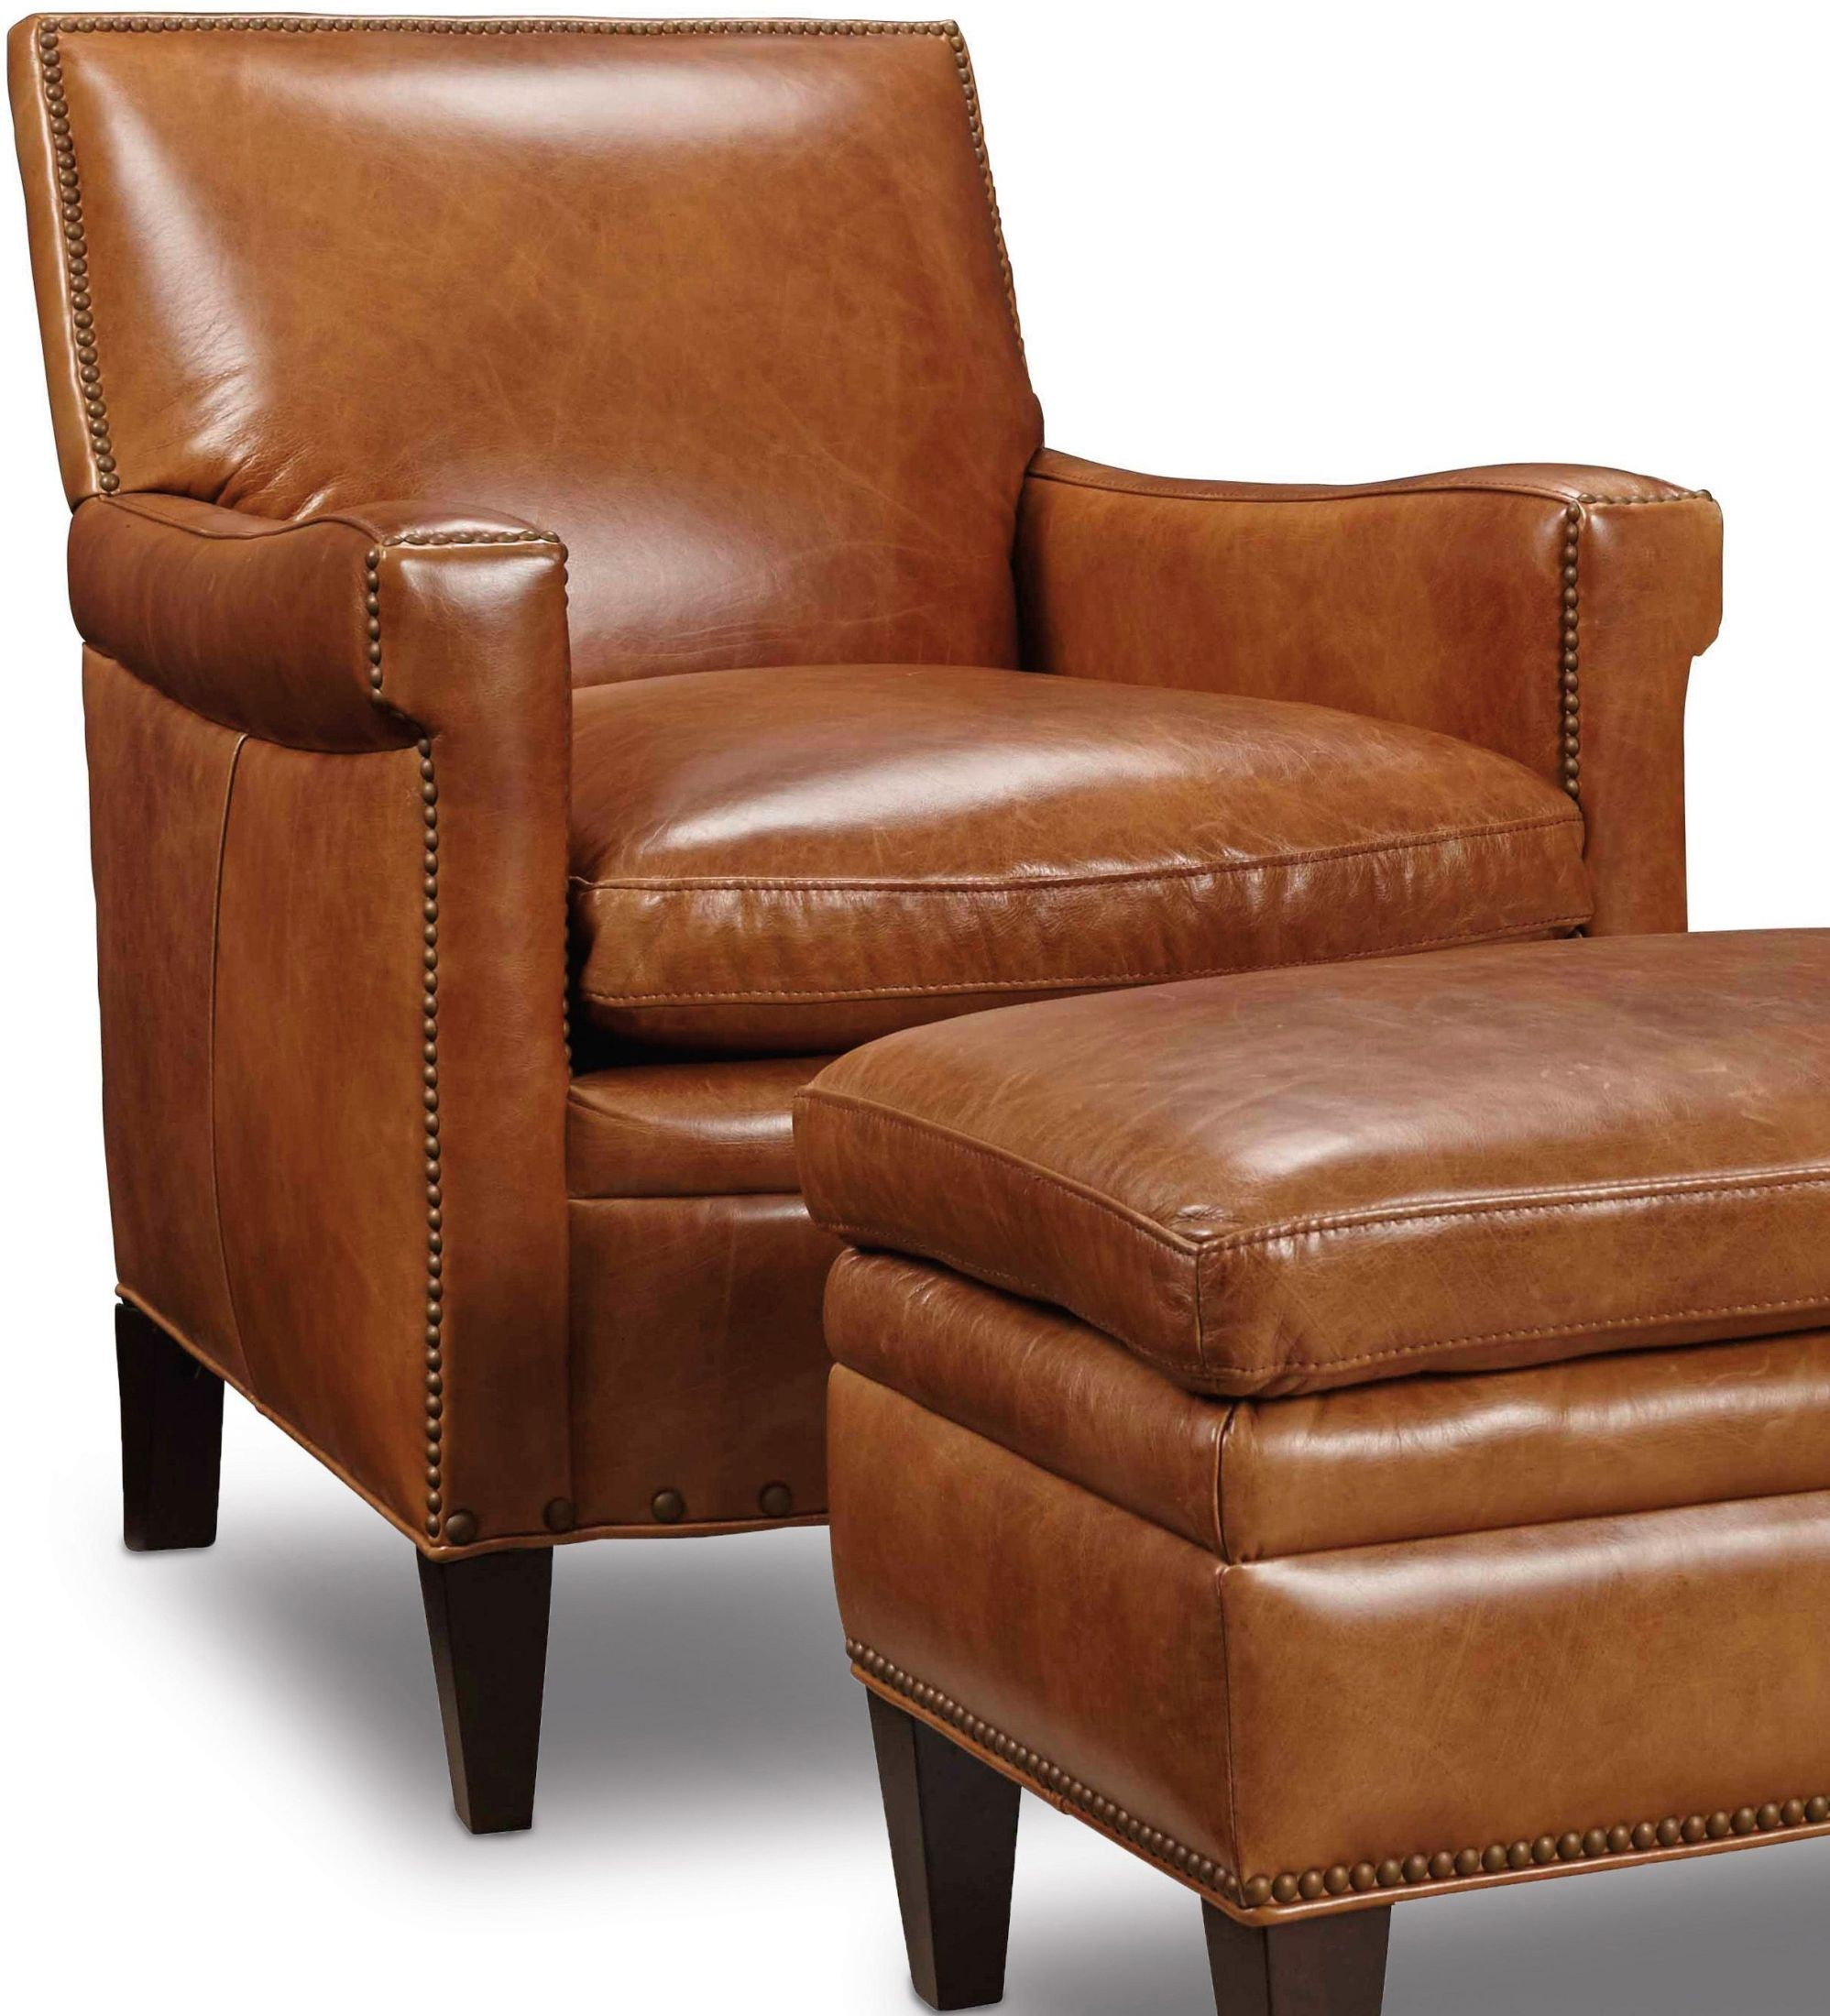 Club Chair Leather Jilian Brown Leather Club Chair From Hooker Coleman